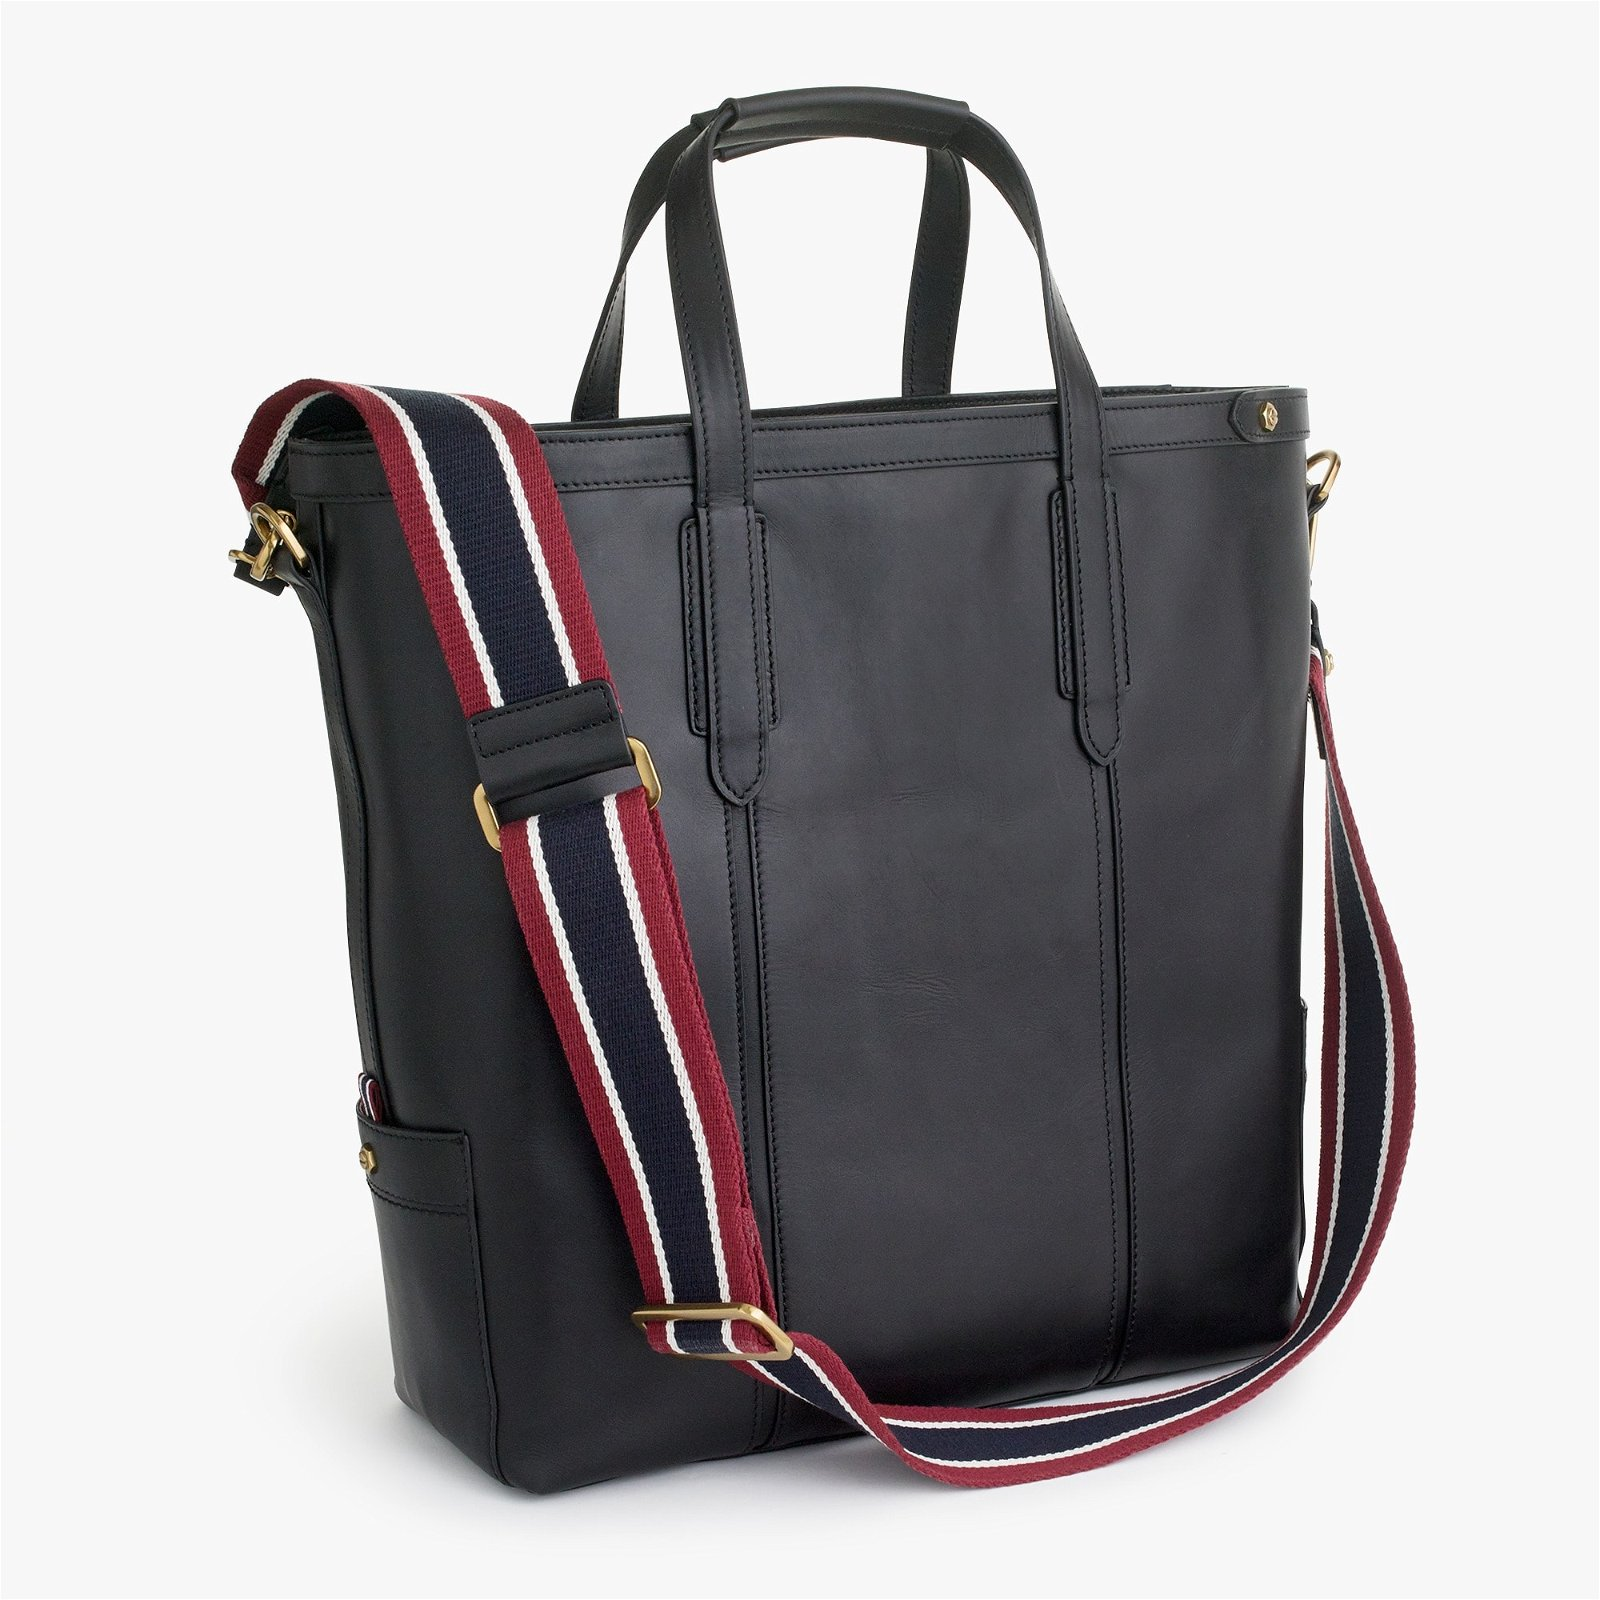 Oar Stripe leather tote bag